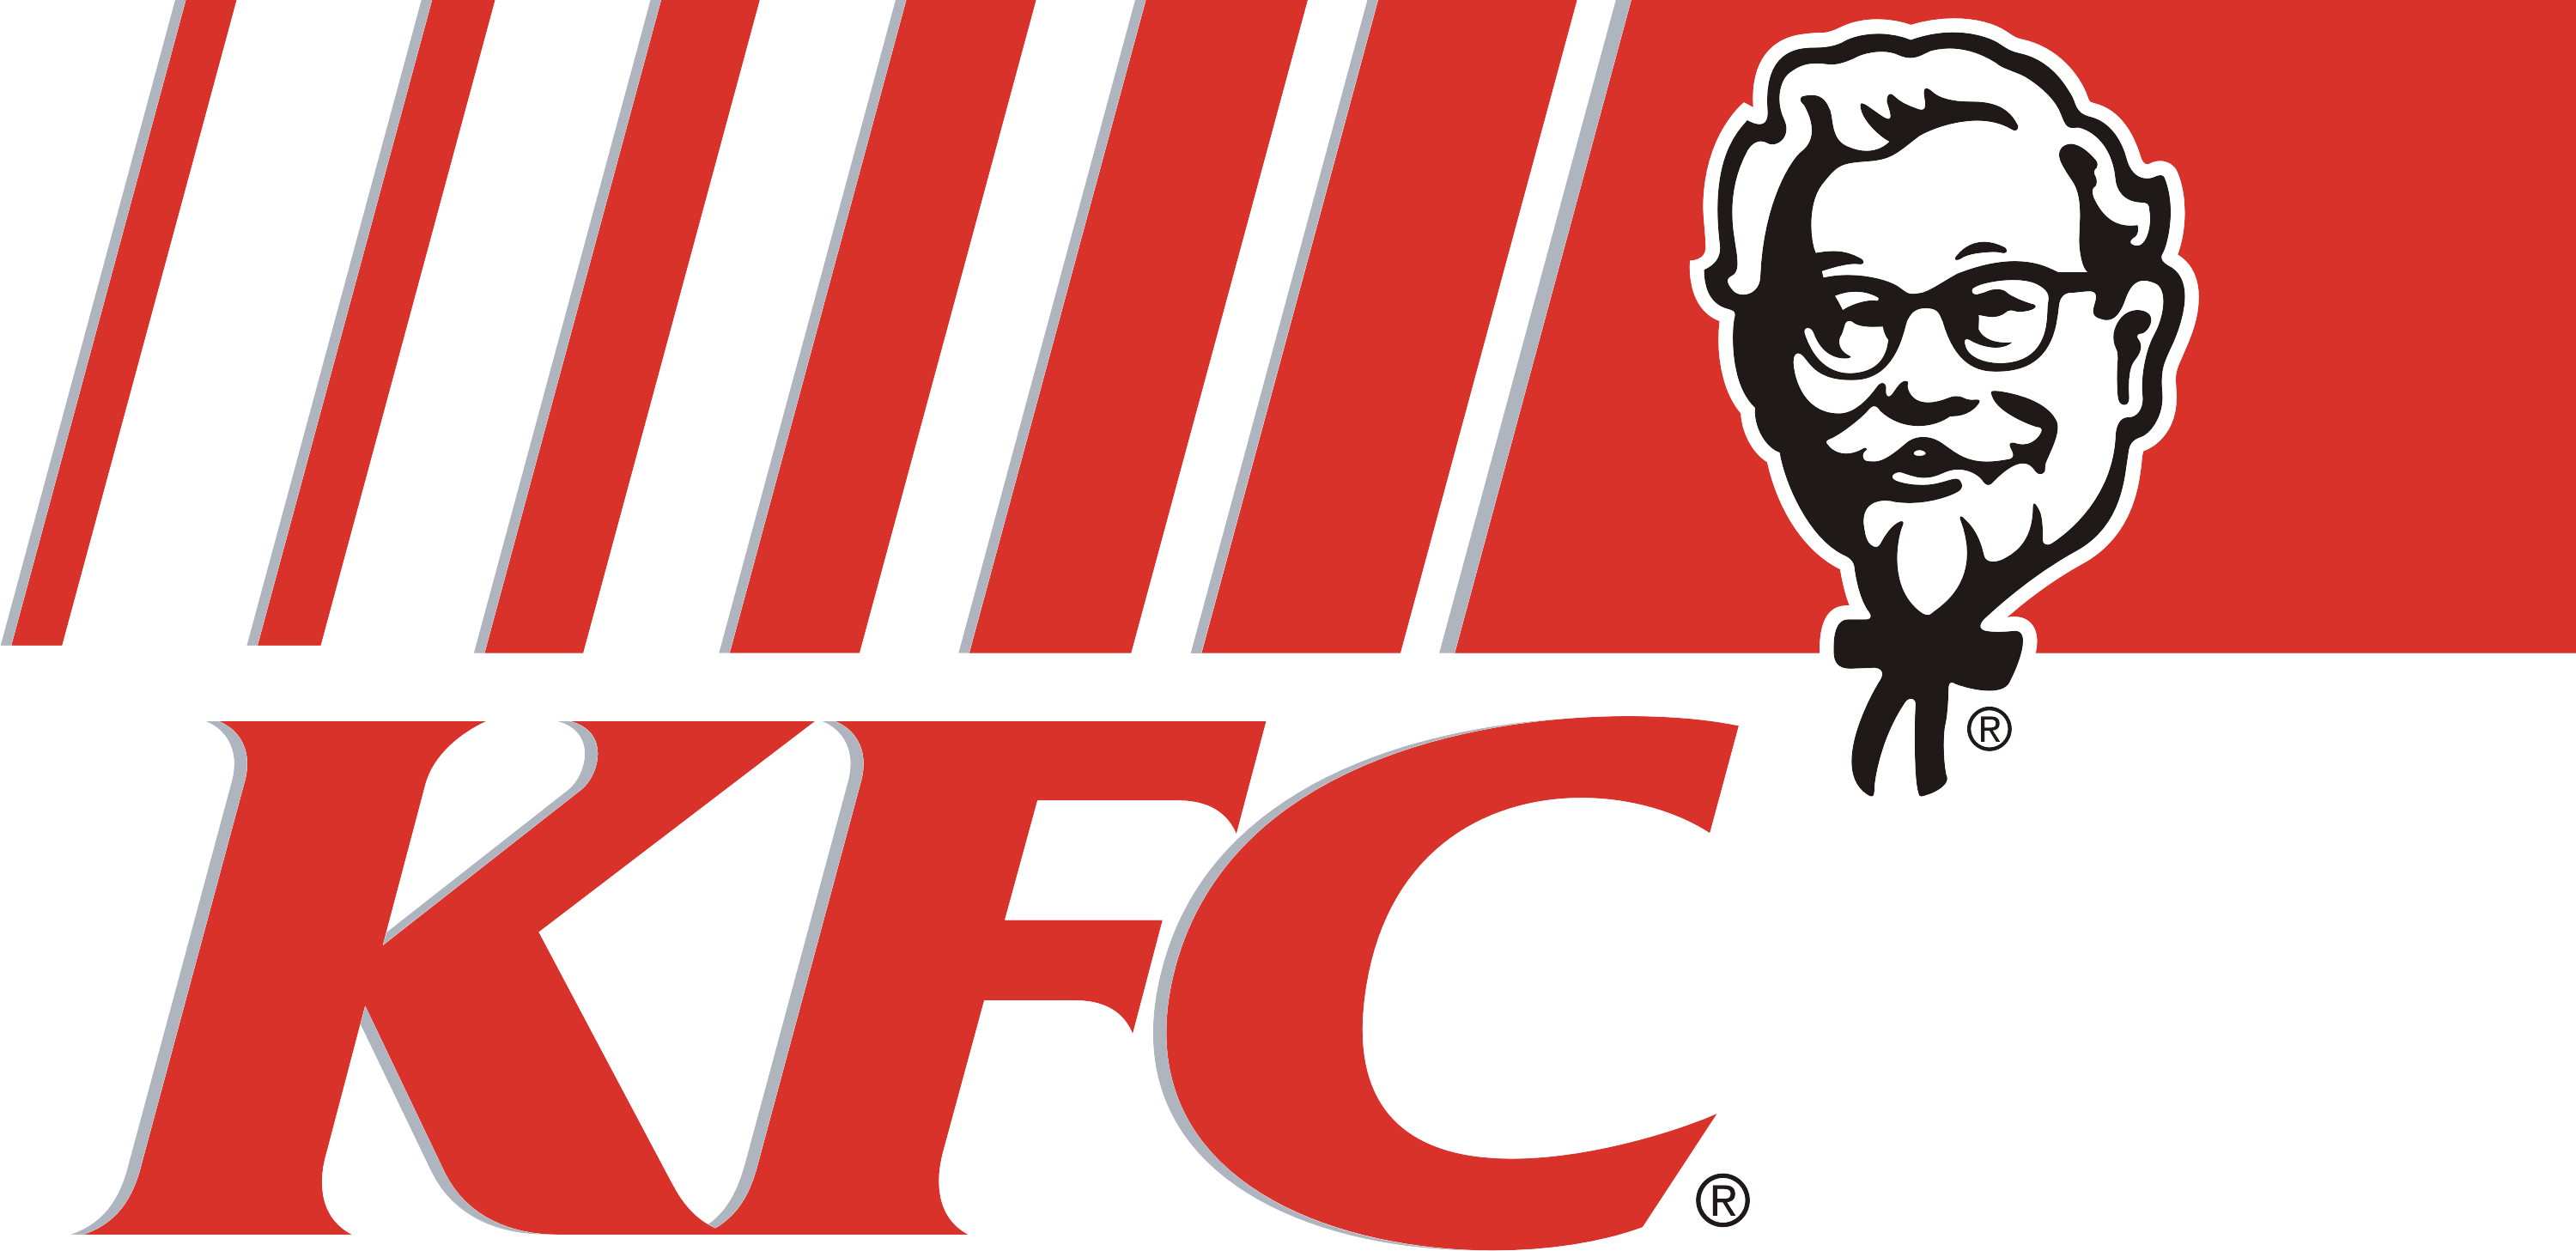 kfc logopedia fandom powered by wikia